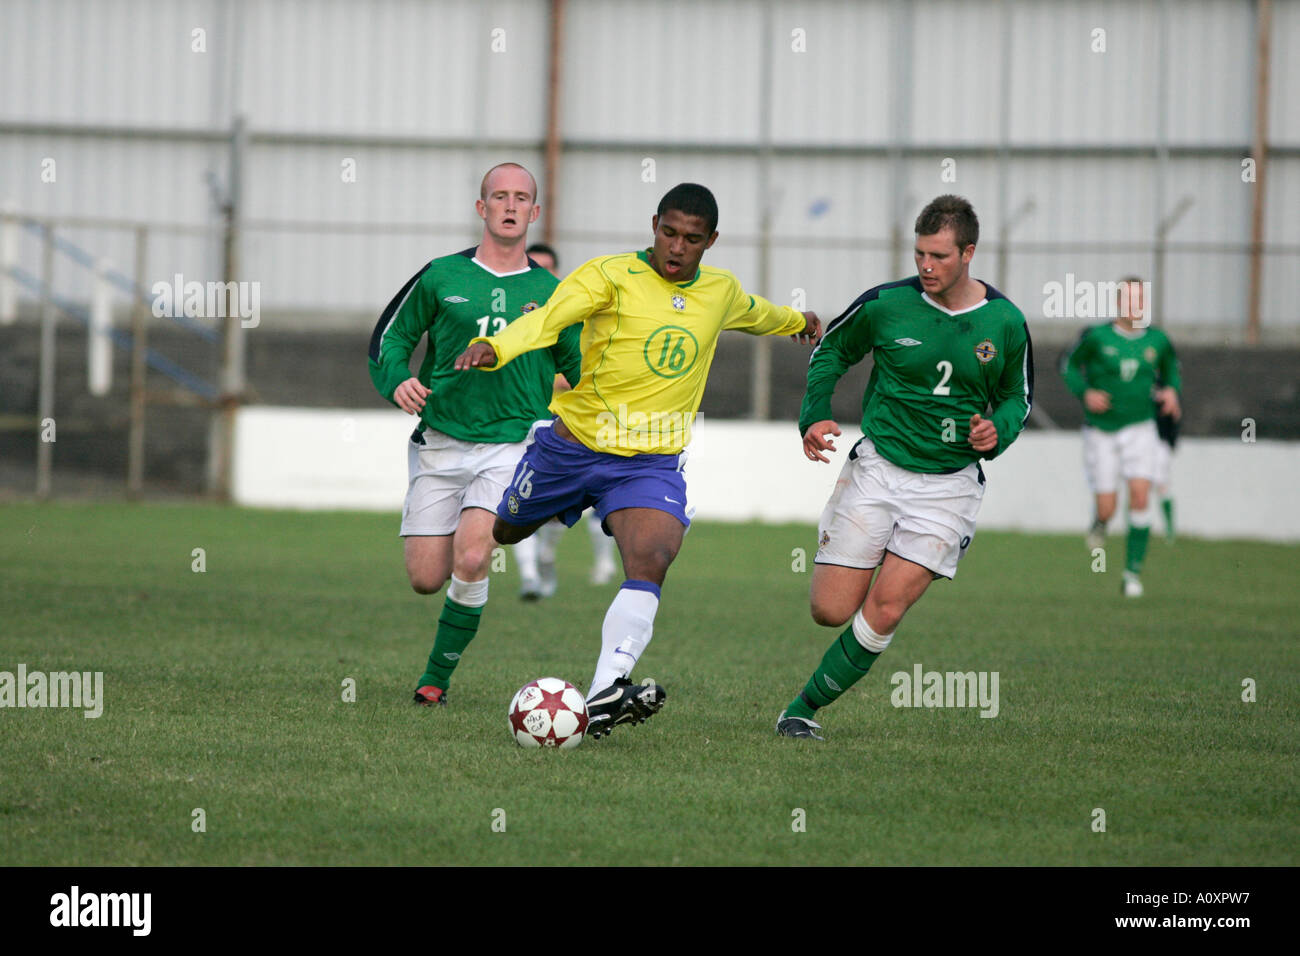 Brazil 16 Sammir sees off a challenge from N Ireland 2 Andrew Cleary Northern Ireland v Brazil elite section under 19 milk cup tournament - Stock Image